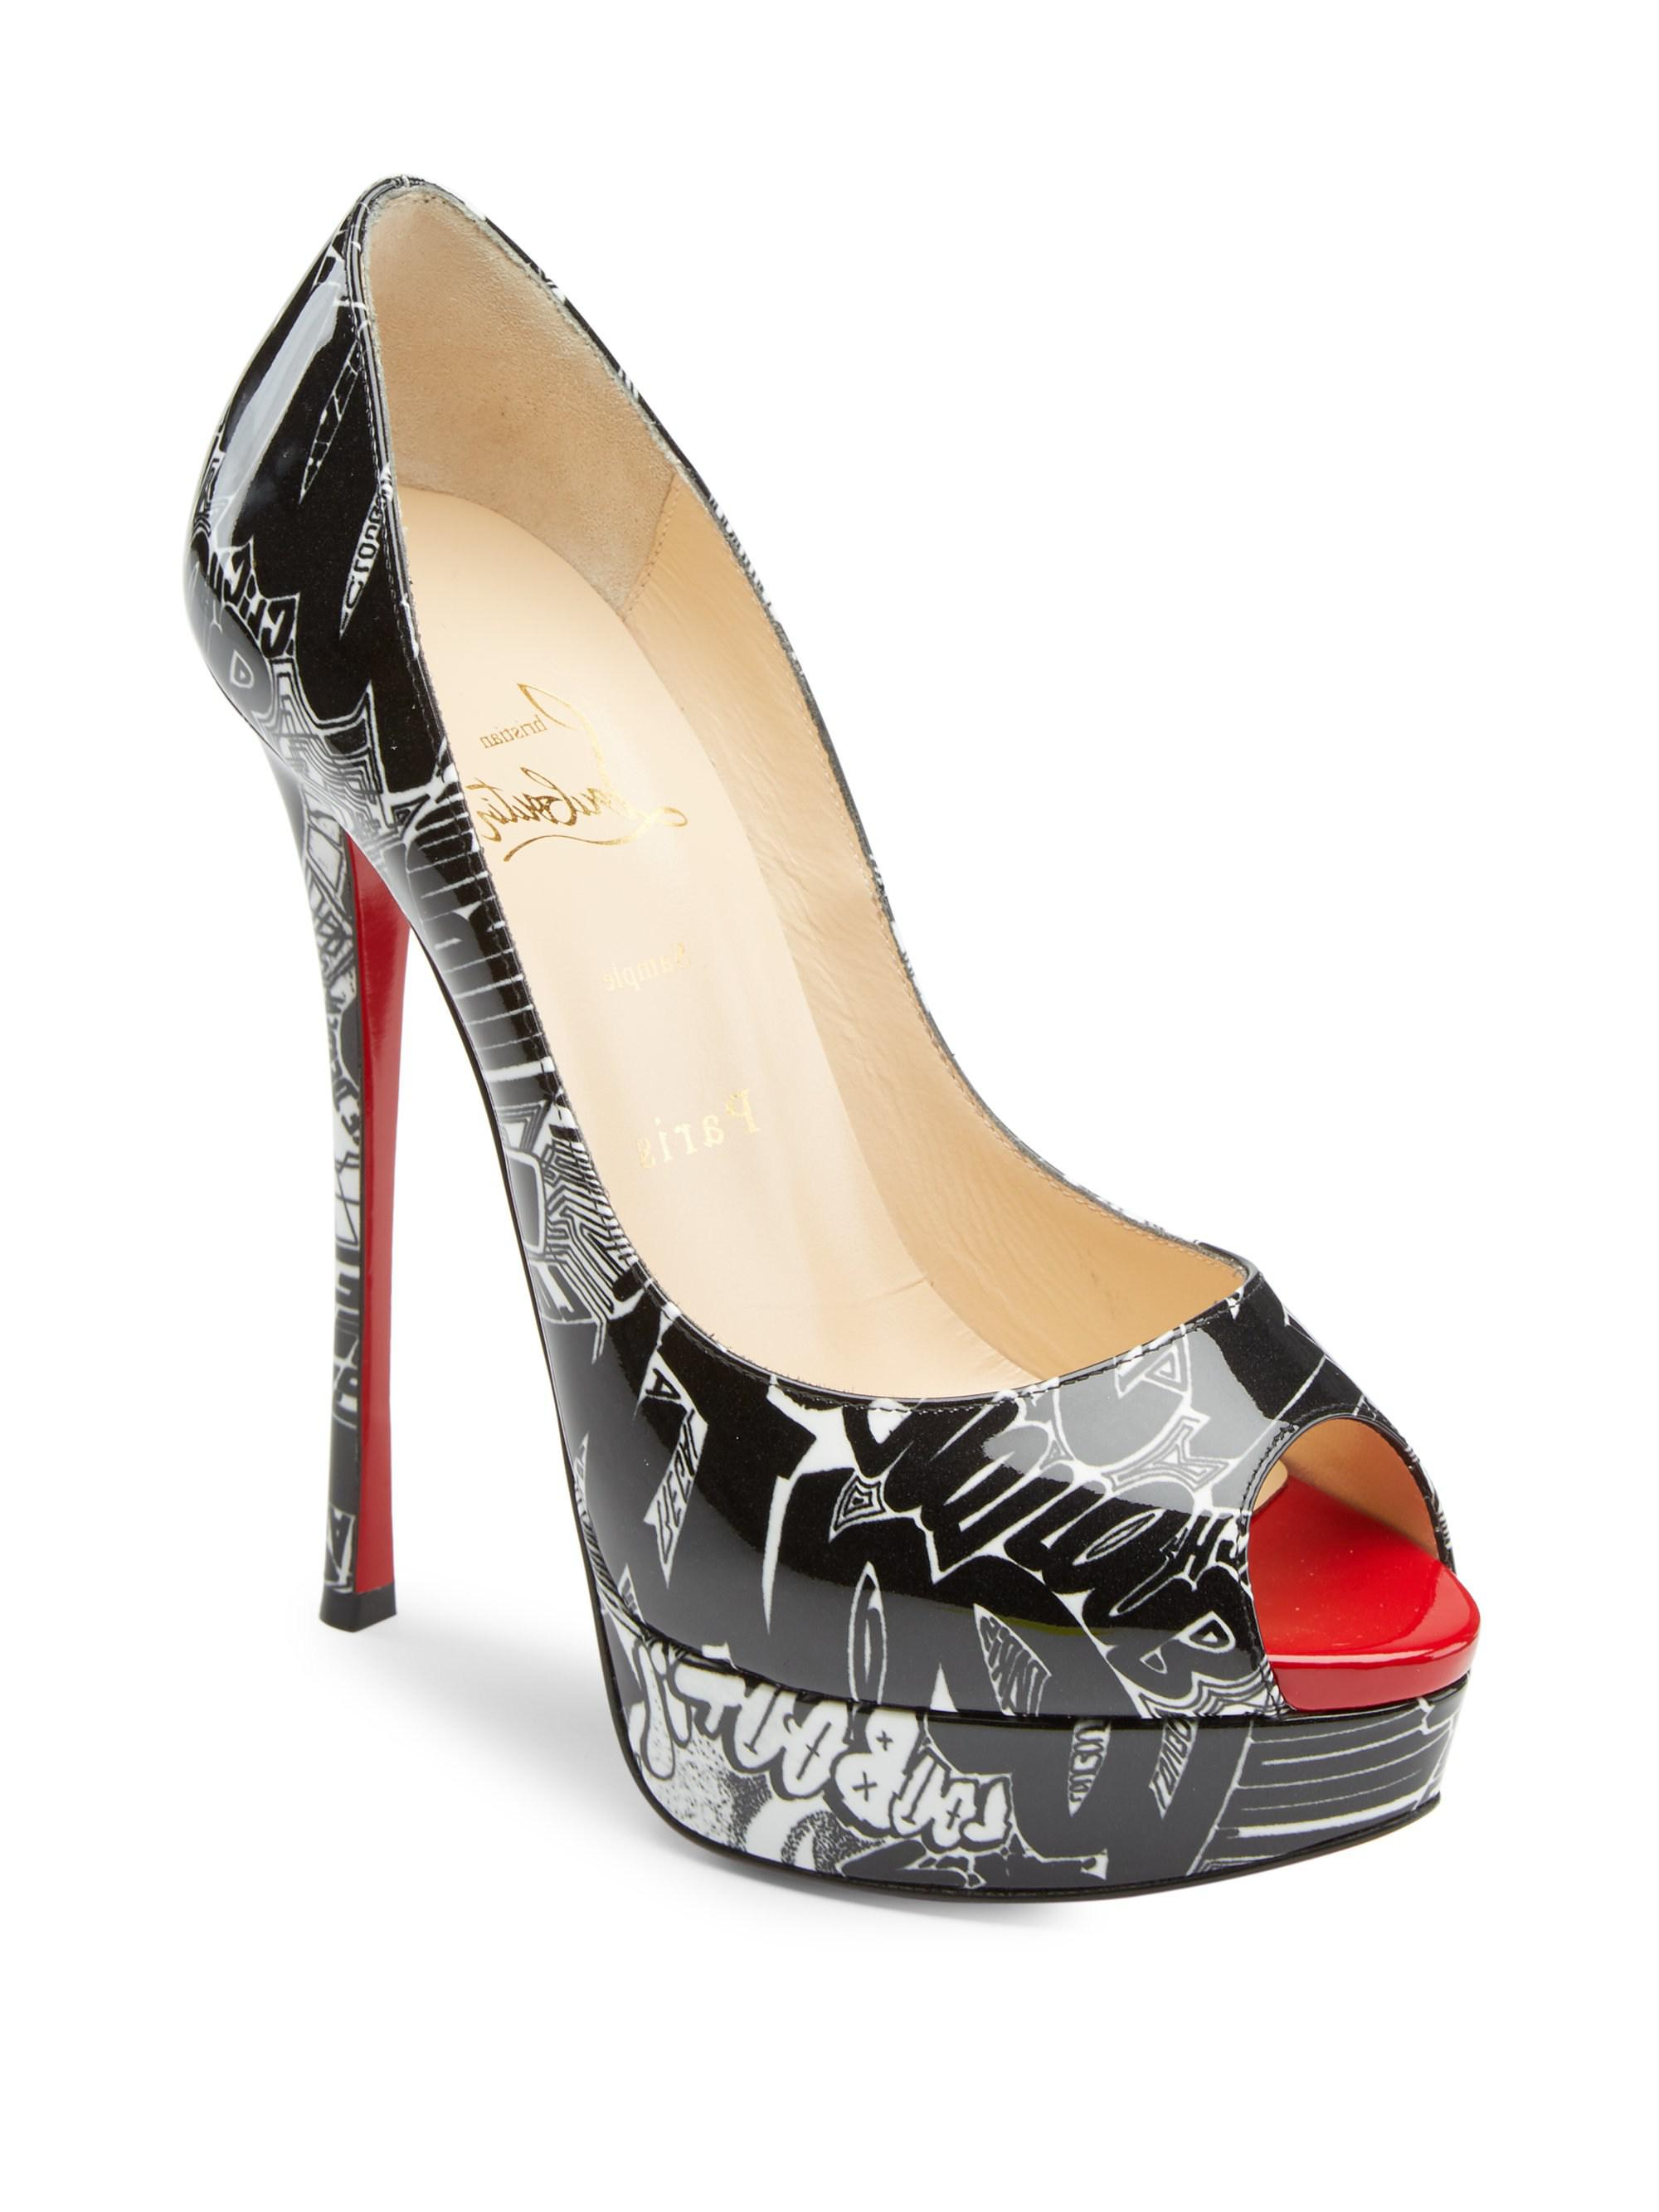 409d1ad89d1 Christian Louboutin Fetish Peep 130 Printed Patent Leather Pumps in ...